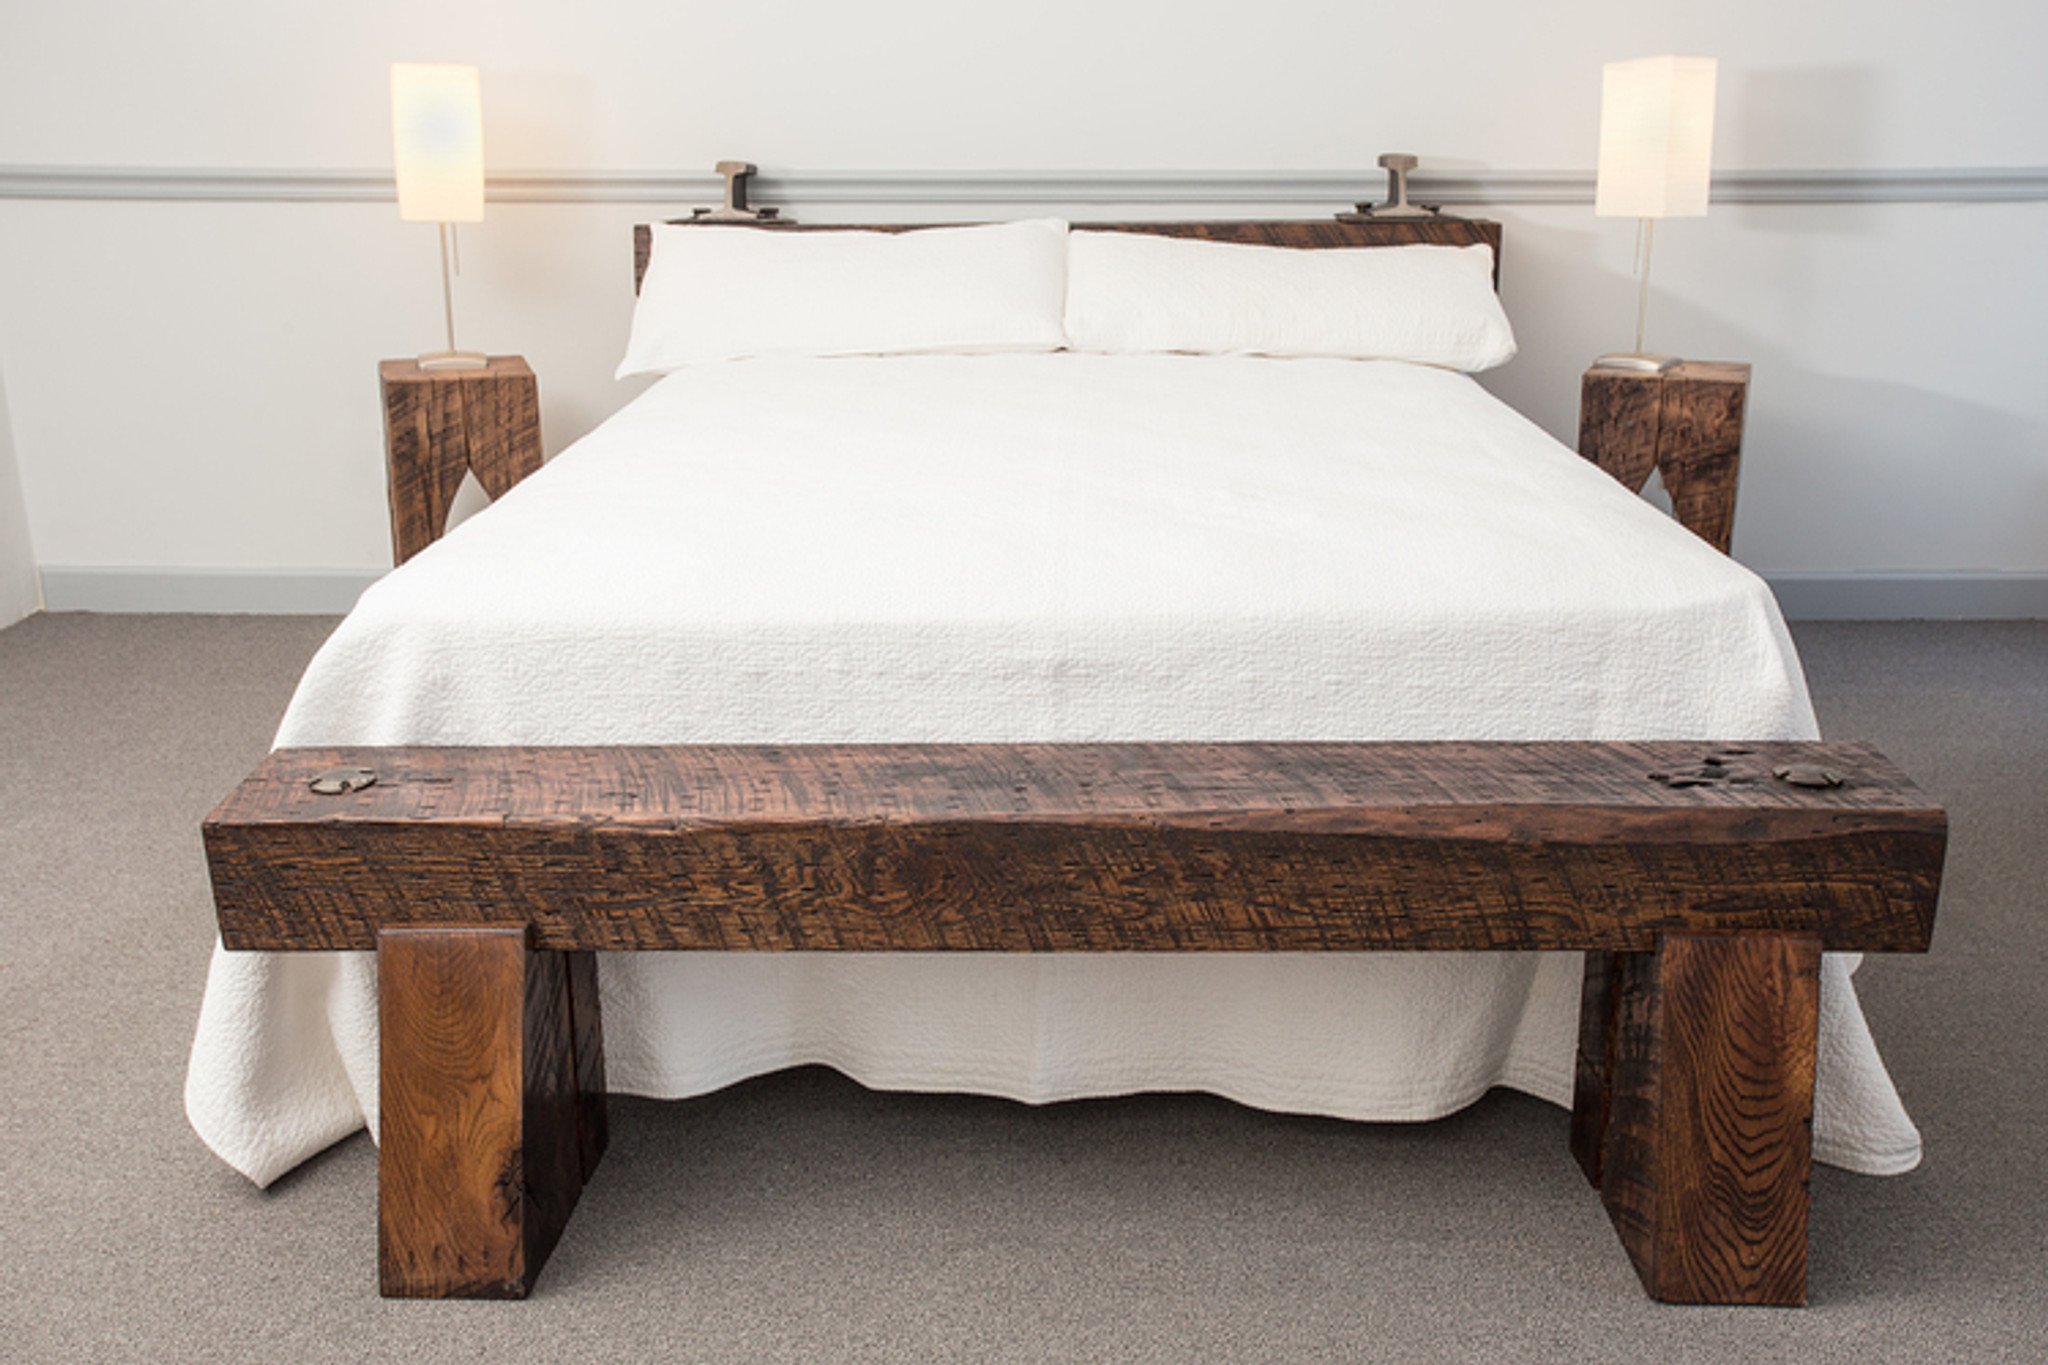 clean modern interior design style bed from oversized wood beams